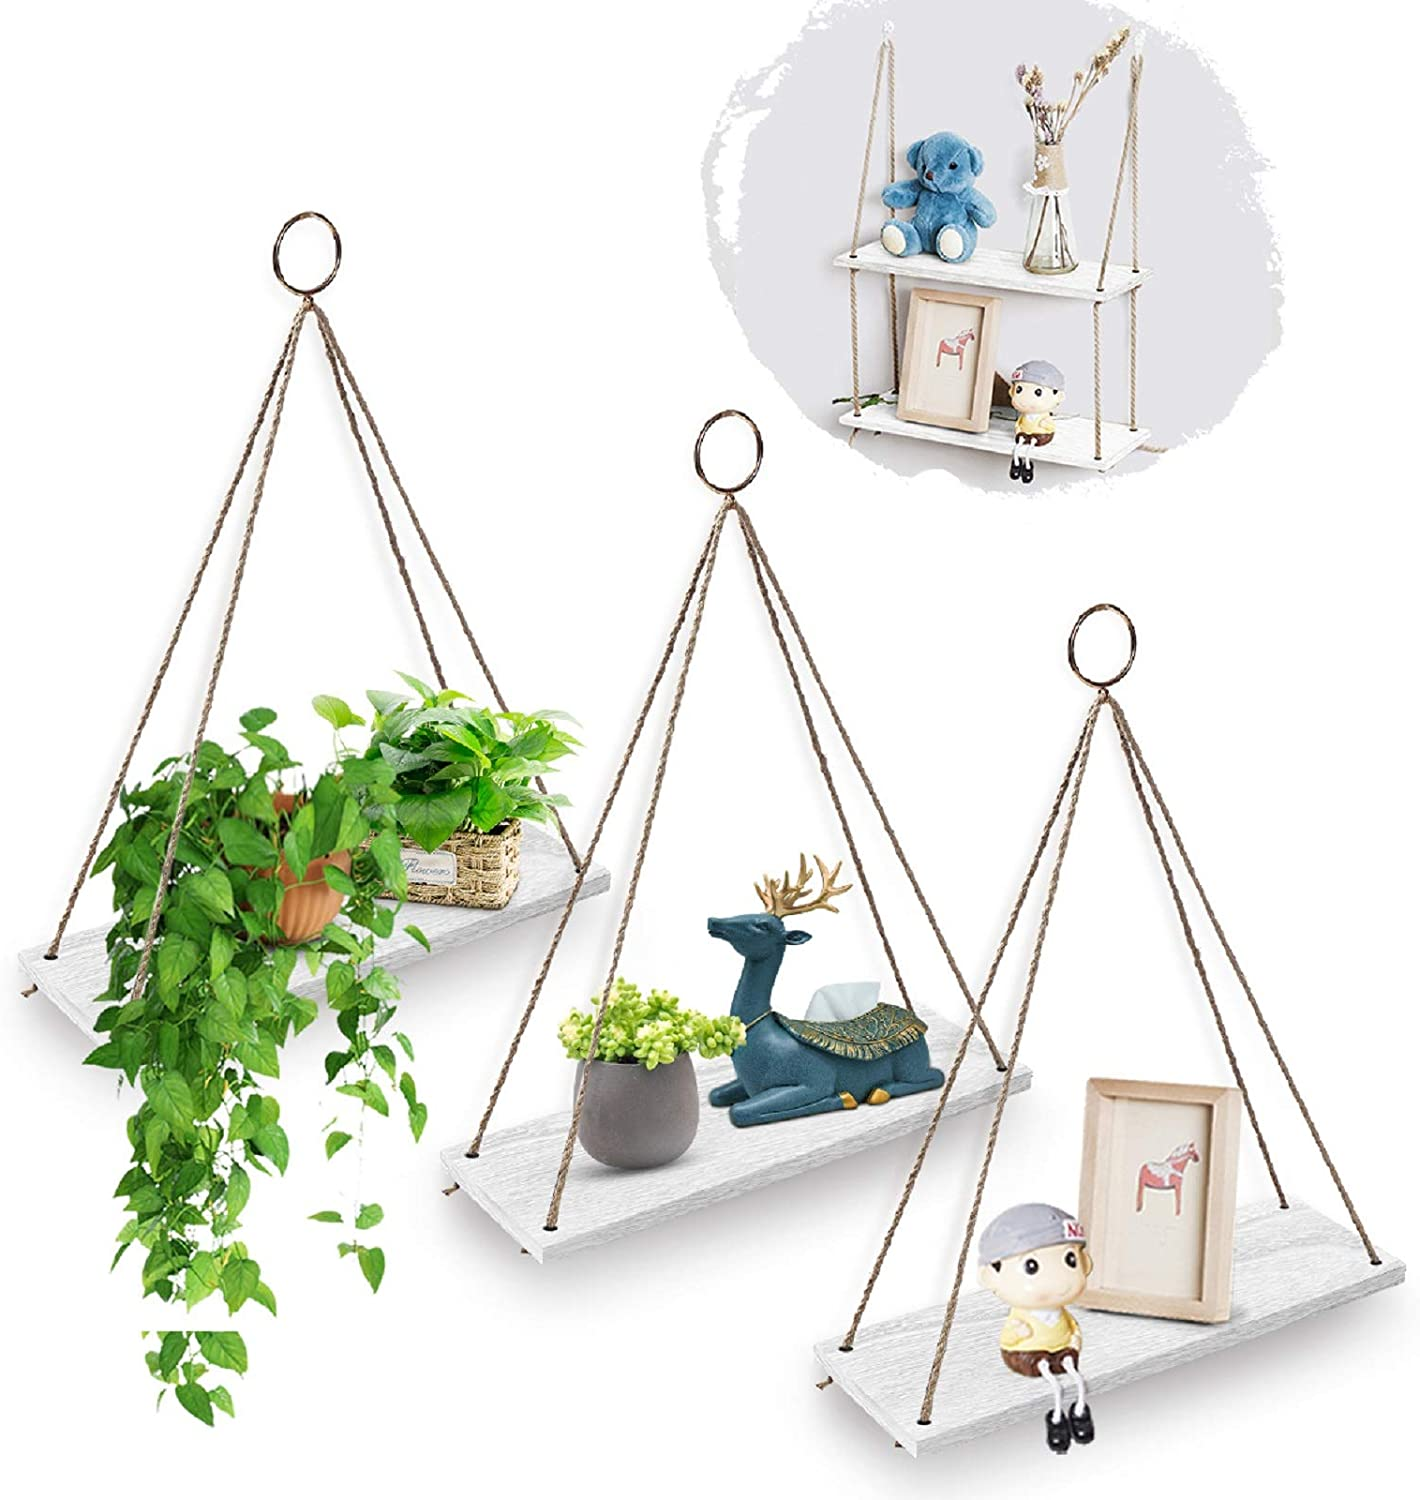 AGSIVO Hanging Shelves for Wall Hanging Floating Shelves with Rope for Living Room Bedroom Bathroom - Wood Hanging Shelf Storage Decor Wall Shelves, Lightweight and Durable (3PCS White)